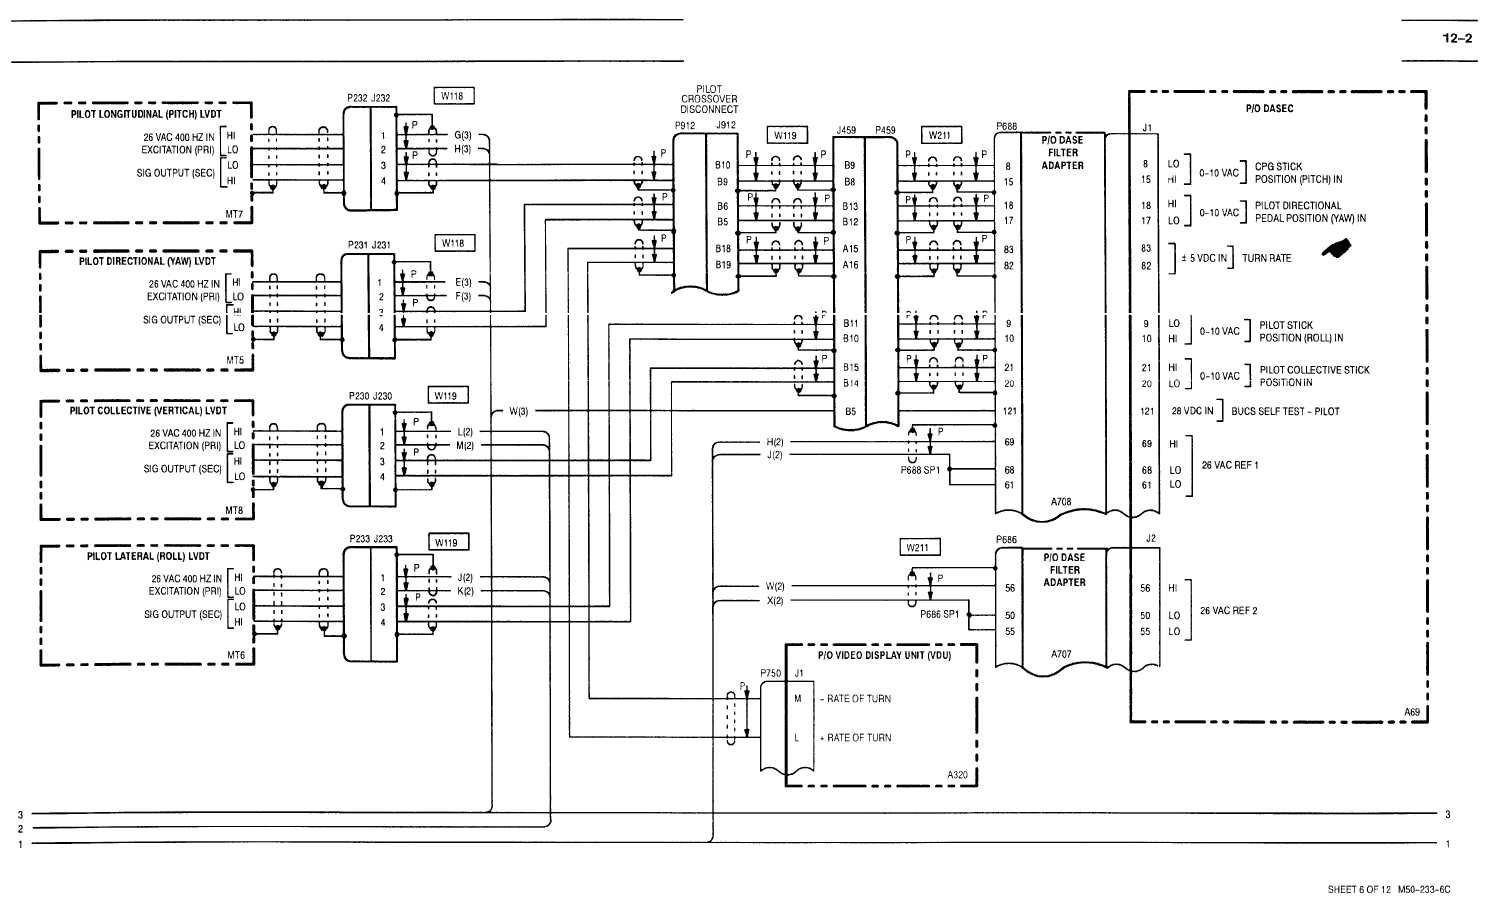 12 2 Dase Wiring Diagram Bucs Activated Serial No 88 0200 And Parallel Diagrams Subsequent Cont 18 Change